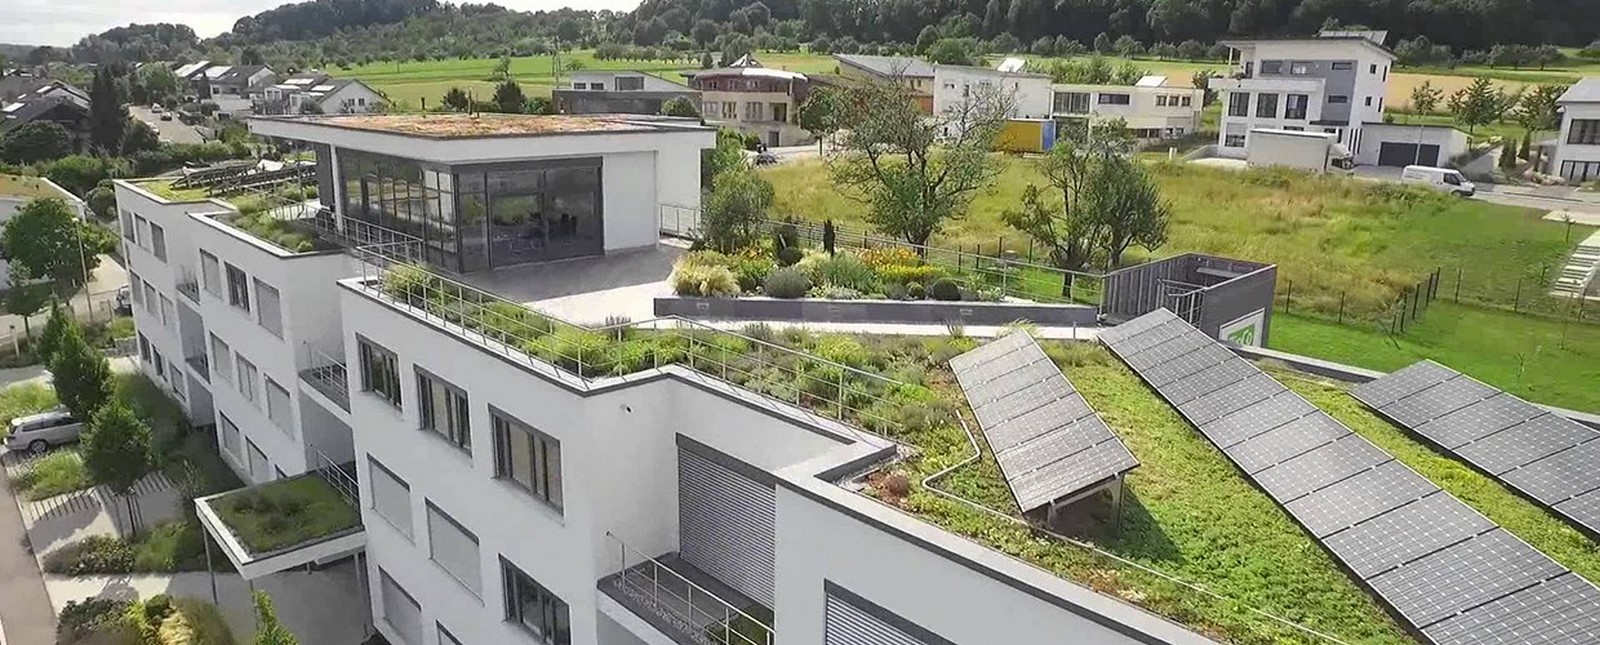 10 Things to remember while designing Energy-efficient structures - Sheet7